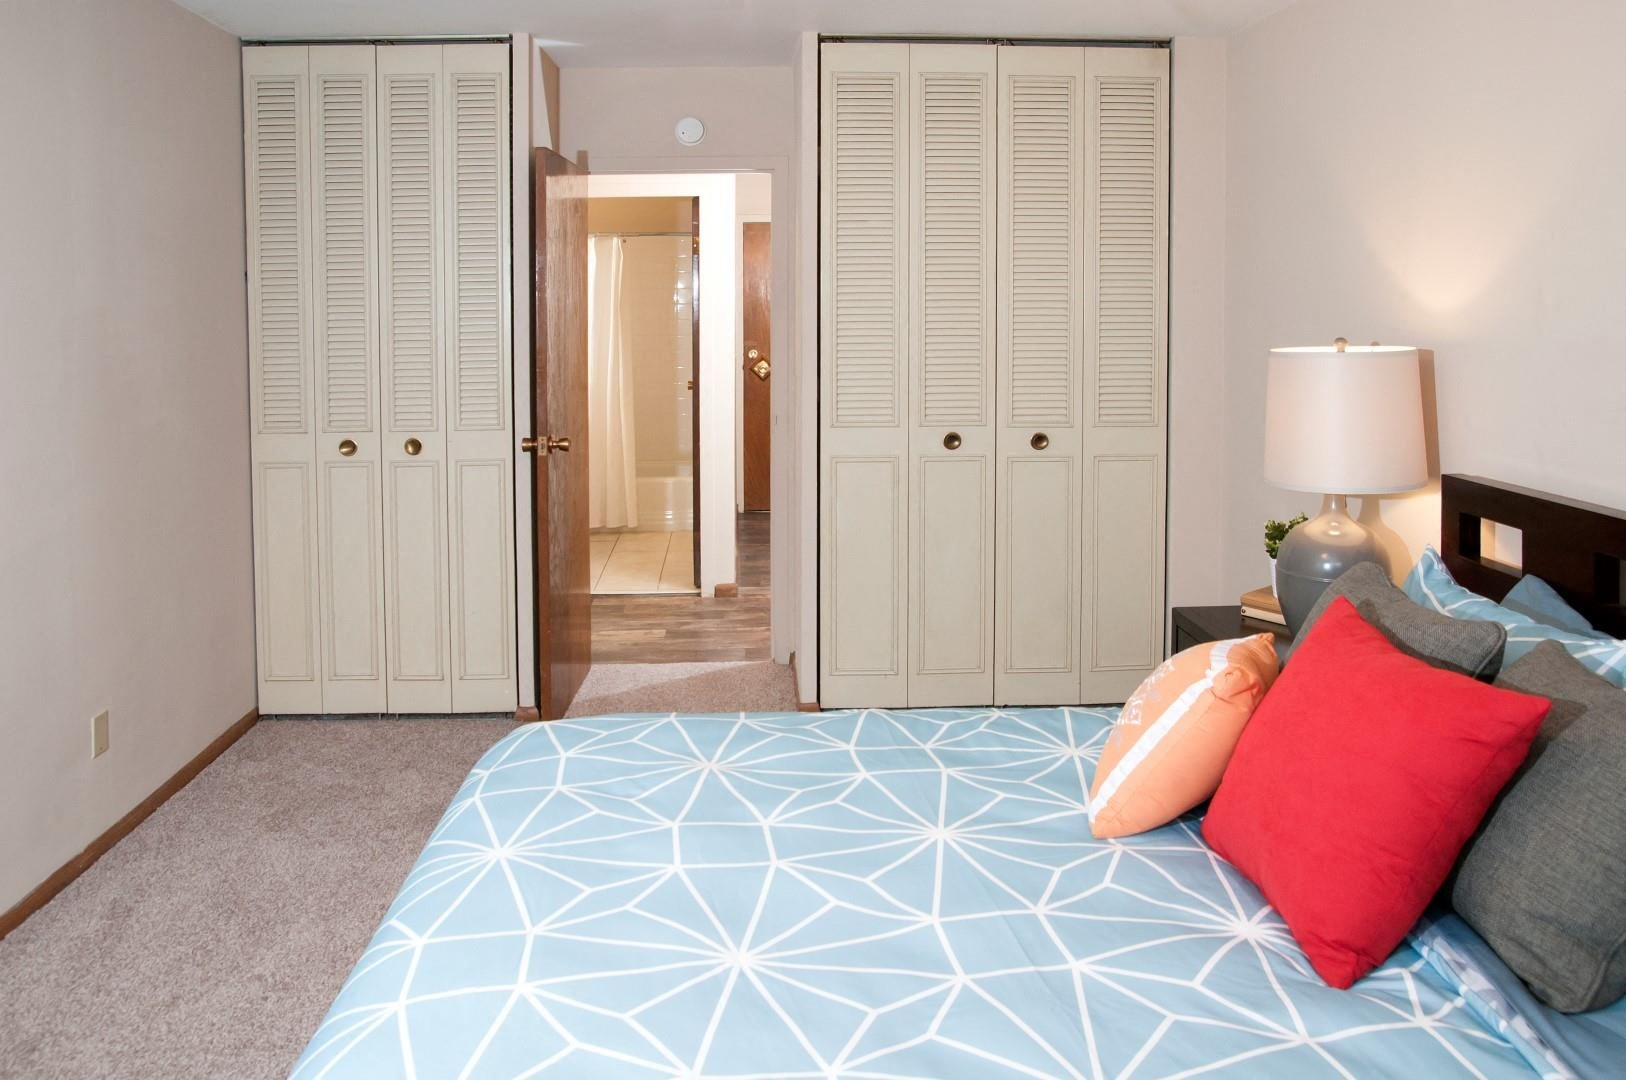 Two Double Door Closets in Master Bedroom of Boulevard 100 Apartments in St. Louis Park, MN